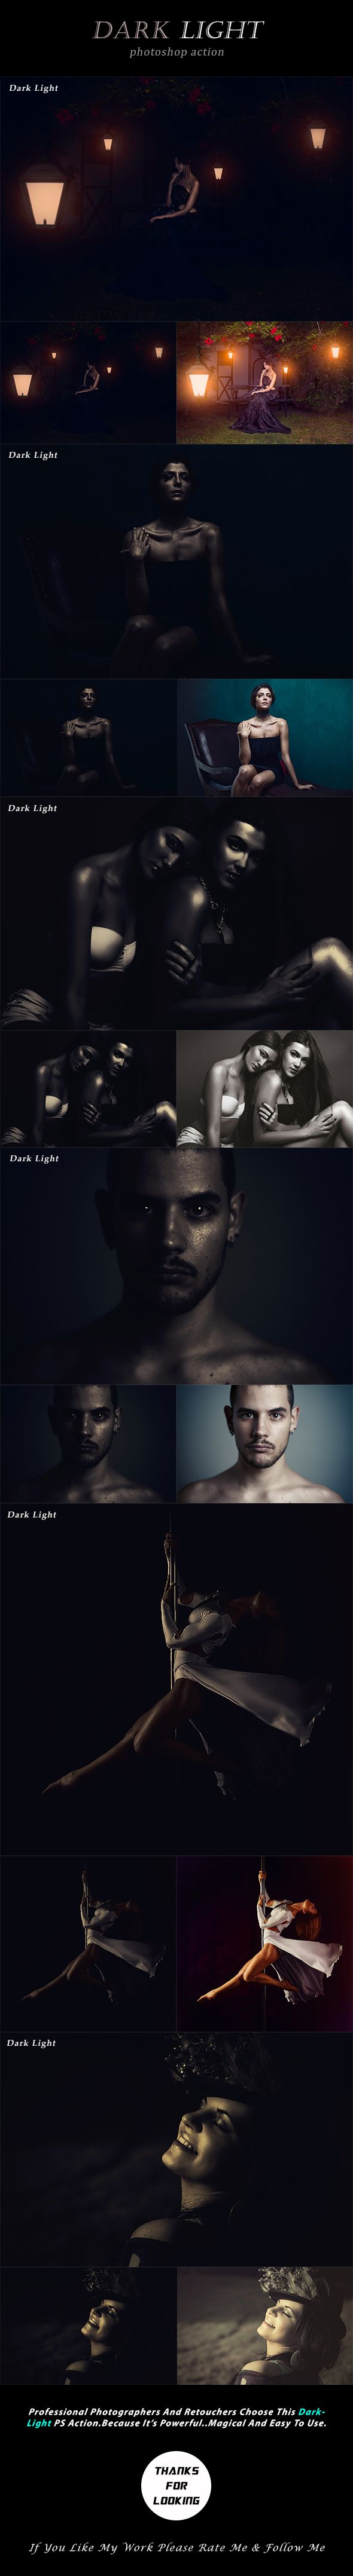 Dark Light Photoshop Action - Photo Effects Actions